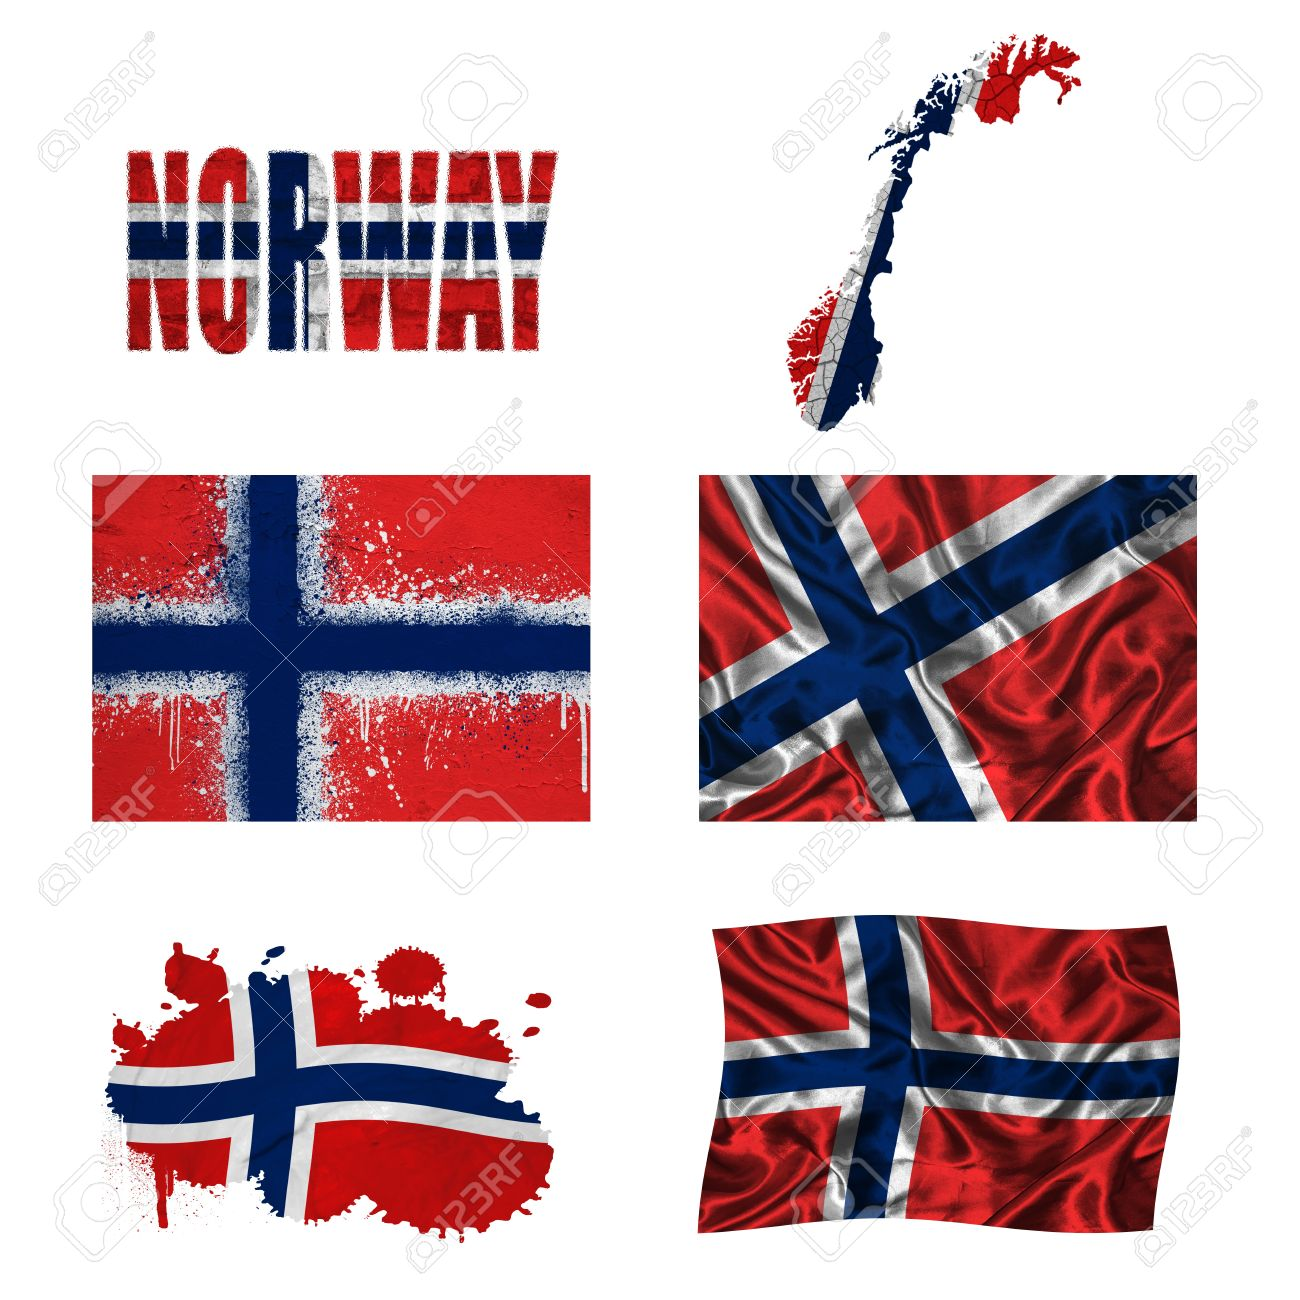 Norway Flag And Map In Different Styles In Different Textures - Norway map and flag